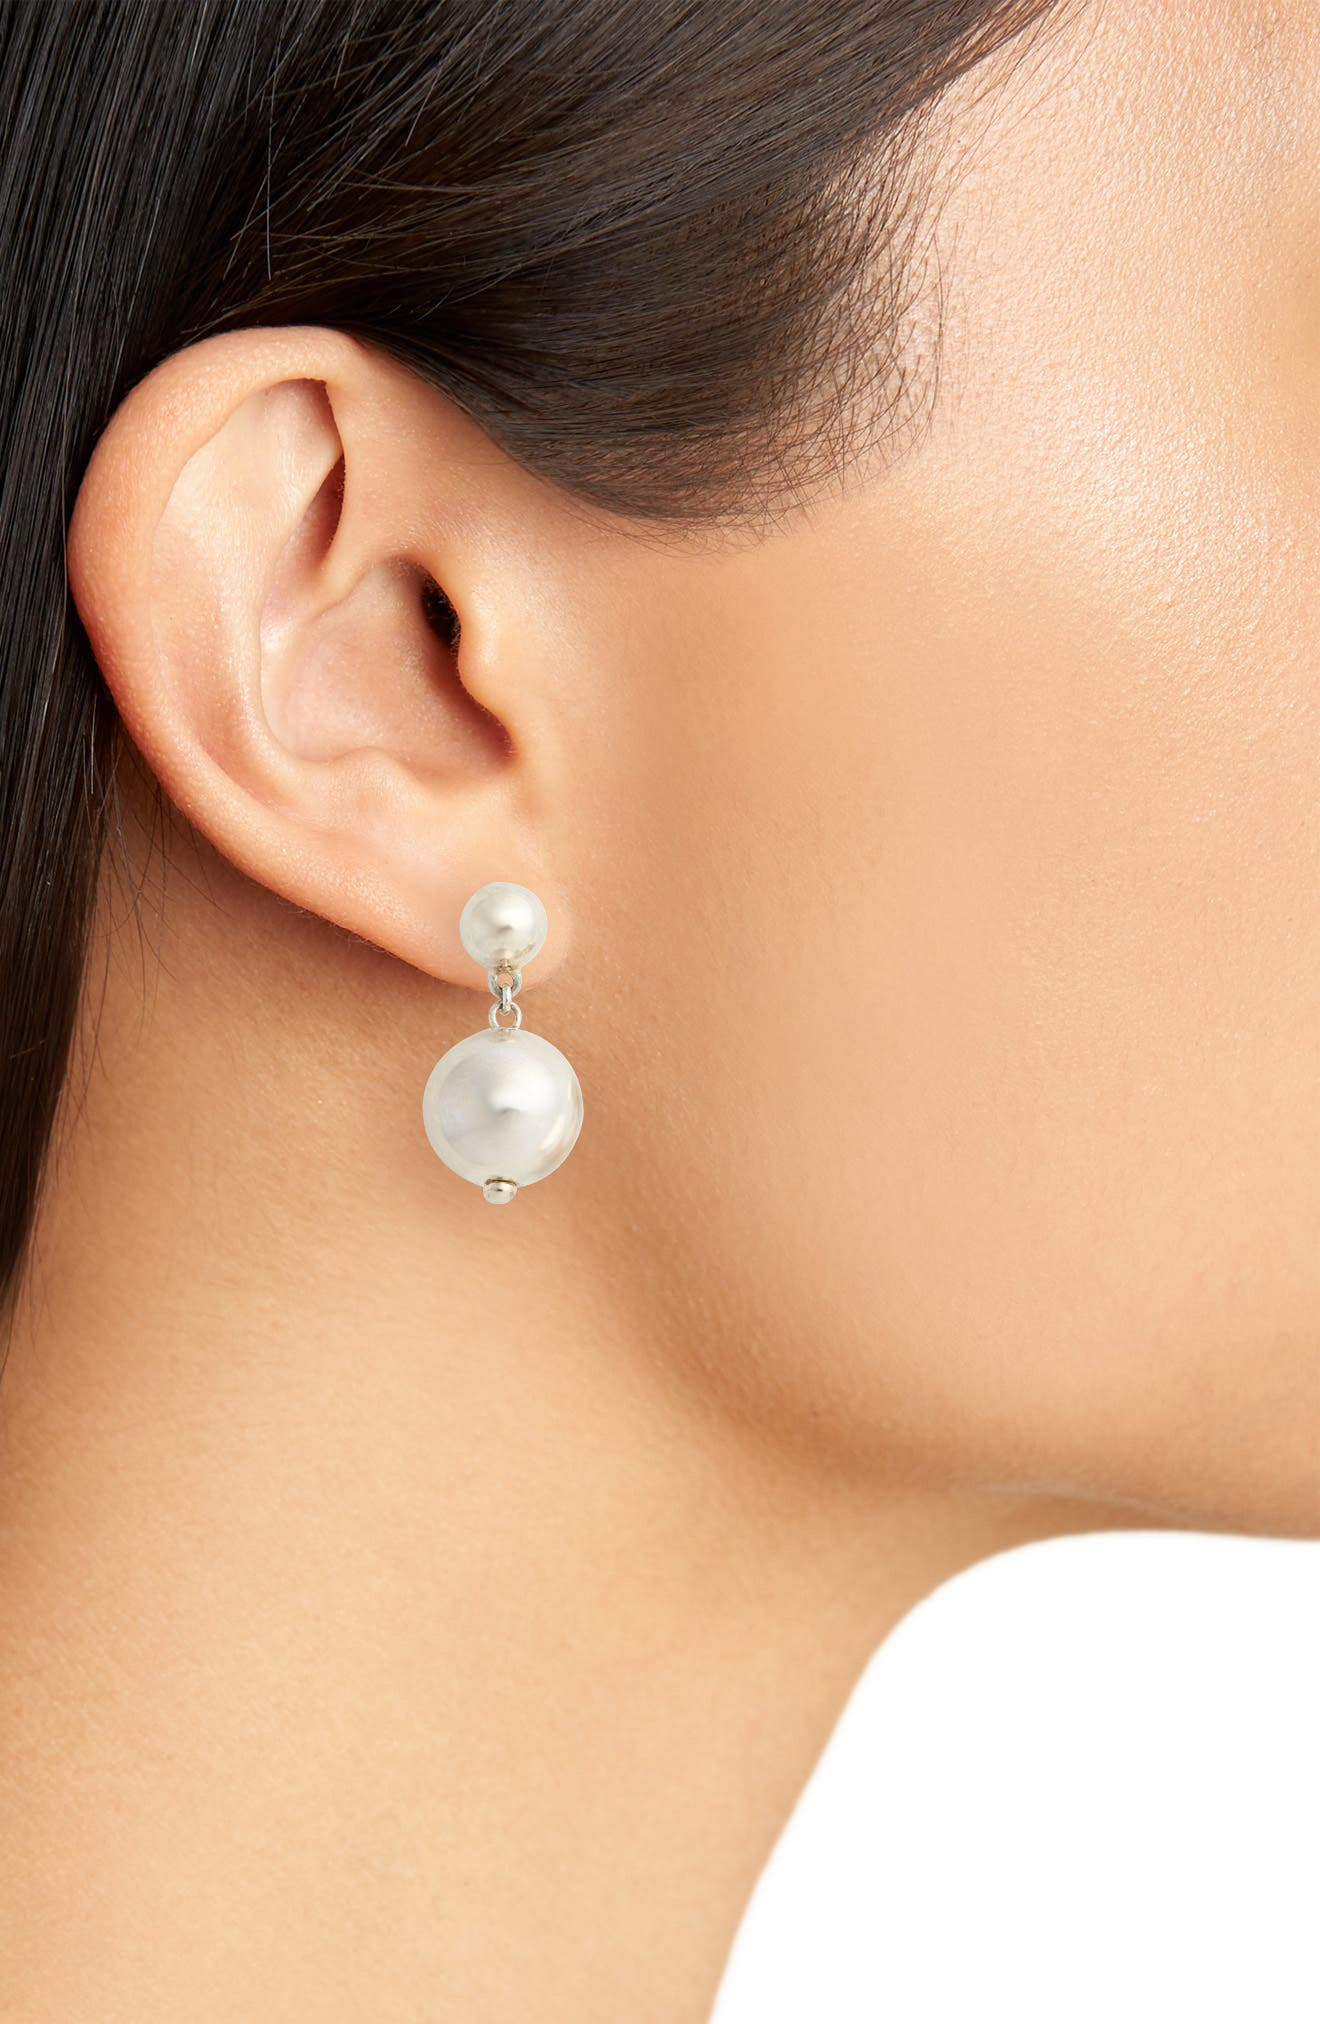 Sterling Silver Ball Drop Earrings,                             Alternate thumbnail 2, color,                             Sterling Silver